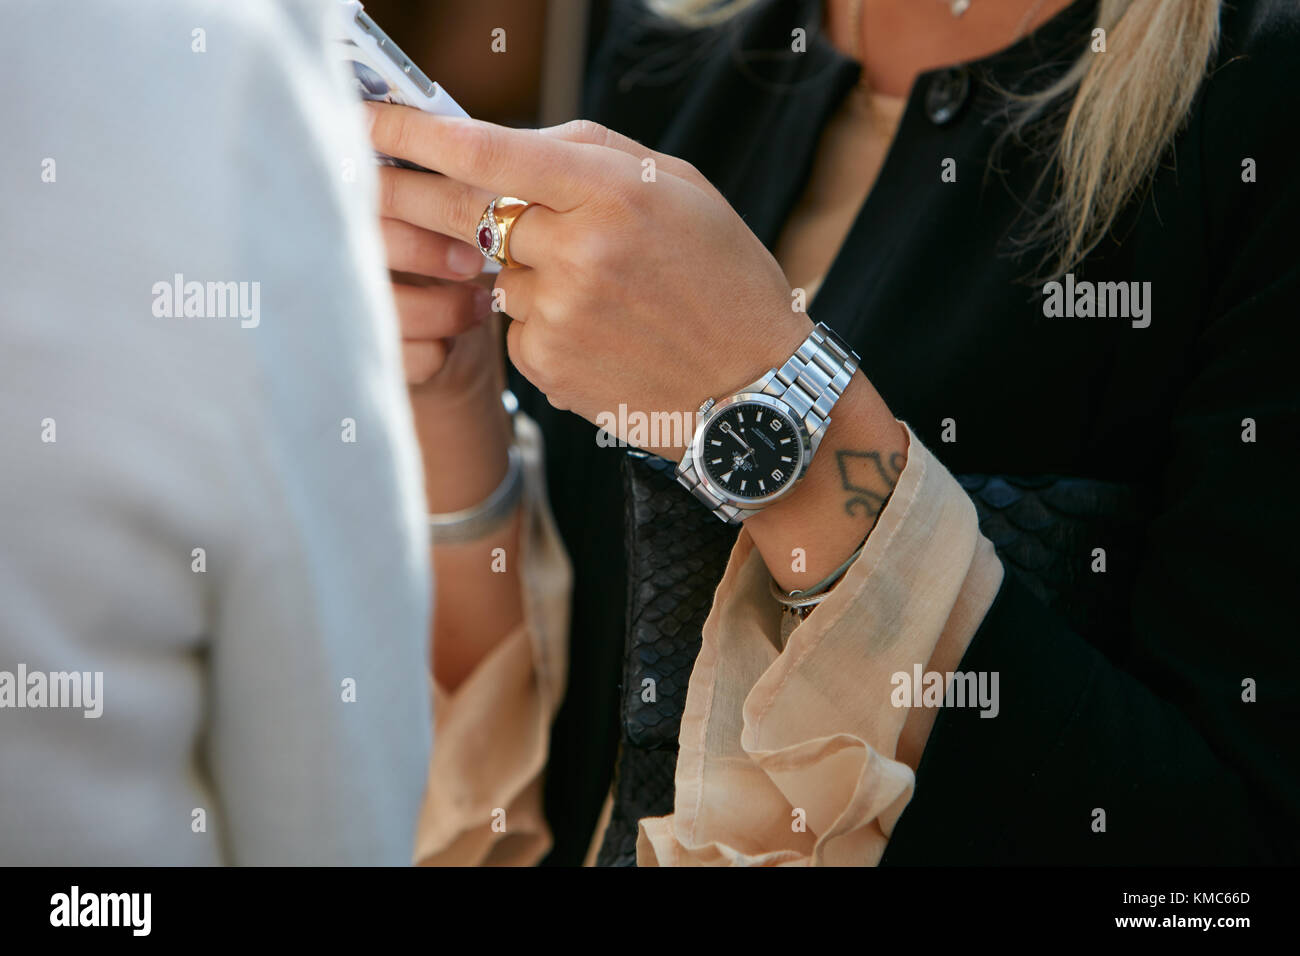 d49a674966ac2f MILAN - SEPTEMBER 23: Woman with Rolex Explorer watch and golden ring  before Antonio Marras fashion show, Milan Fashion Week street style on  September